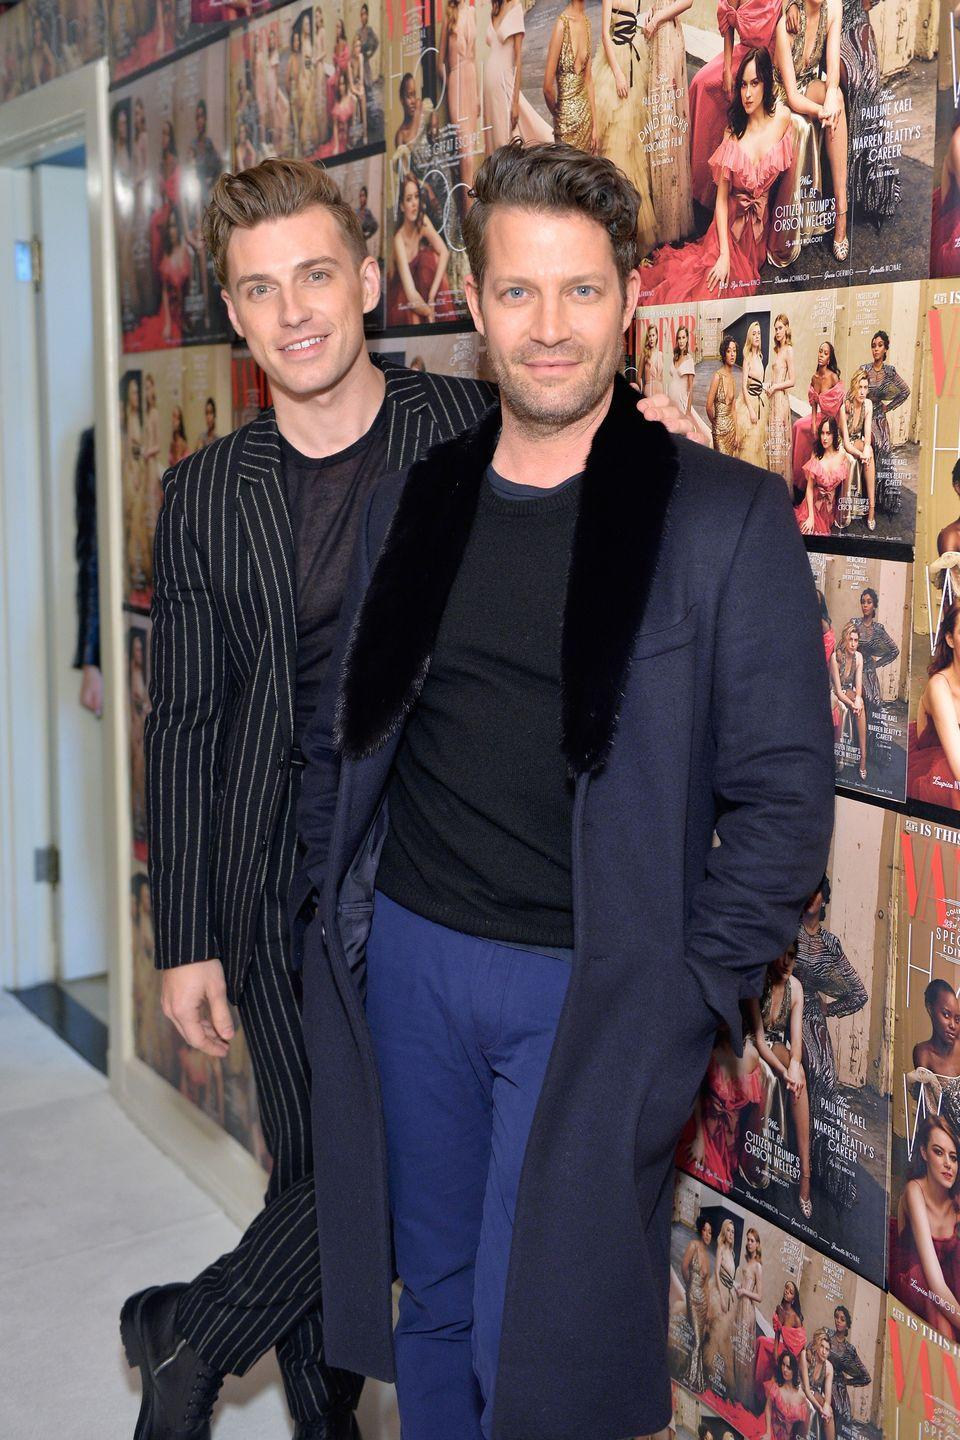 """<p>The interior designer husbands (and dads to daughter Poppy) look like older and younger versions of the same man. (<span class=""""redactor-unlink"""">Berkus</span> is 46 years old, if you can believe it.)</p>"""